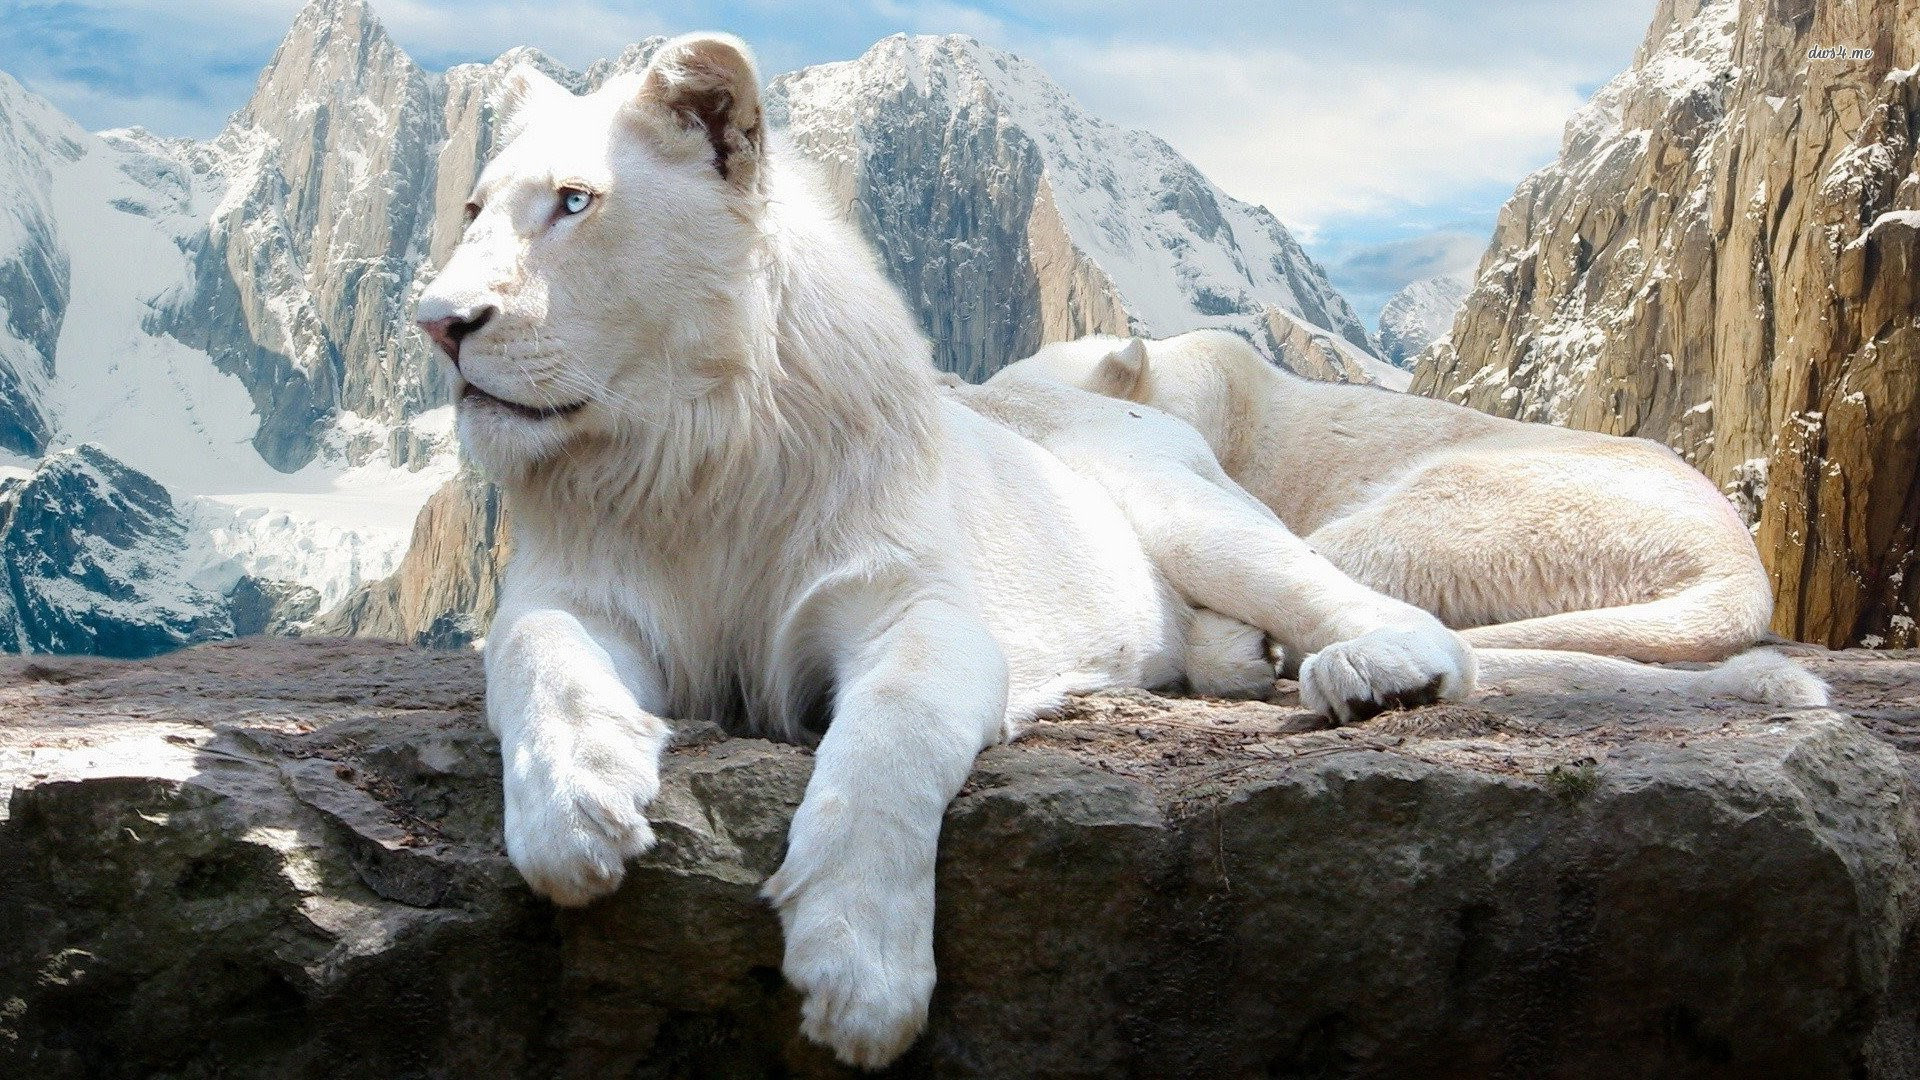 White Lion Wallpapers 66 Images Images, Photos, Reviews